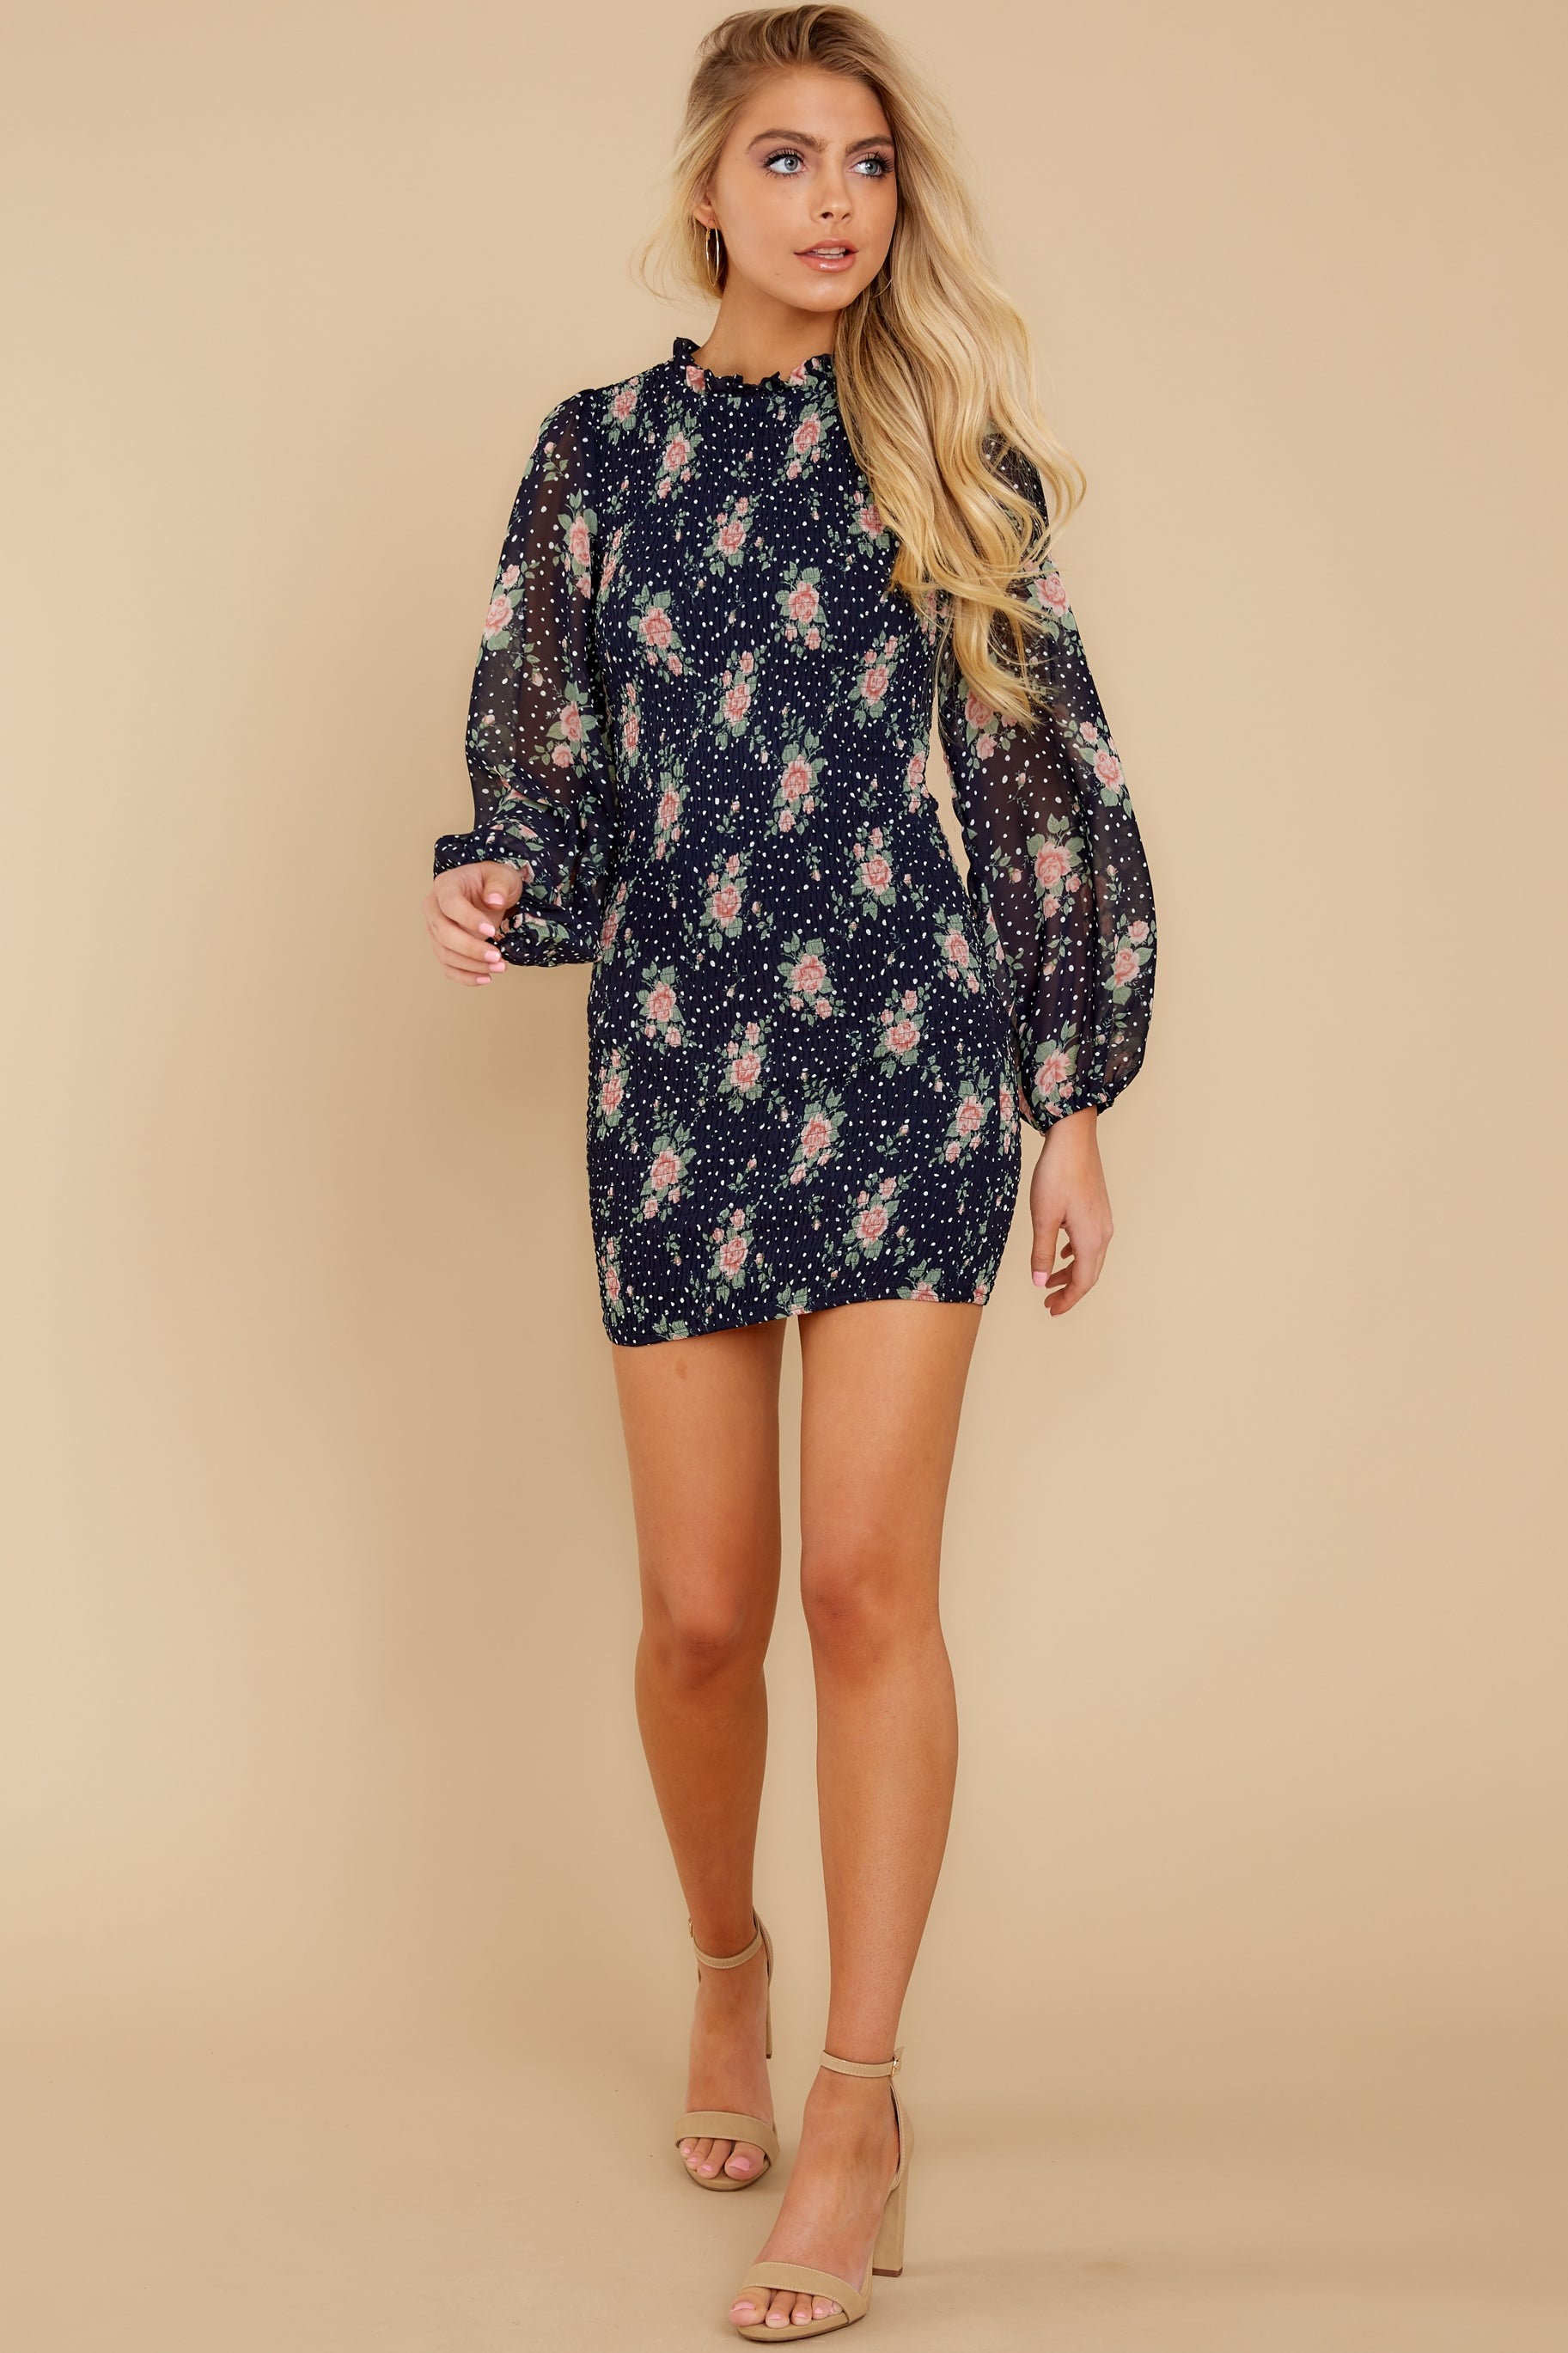 2 No Greater Love Navy Floral Print Dress at reddress.com